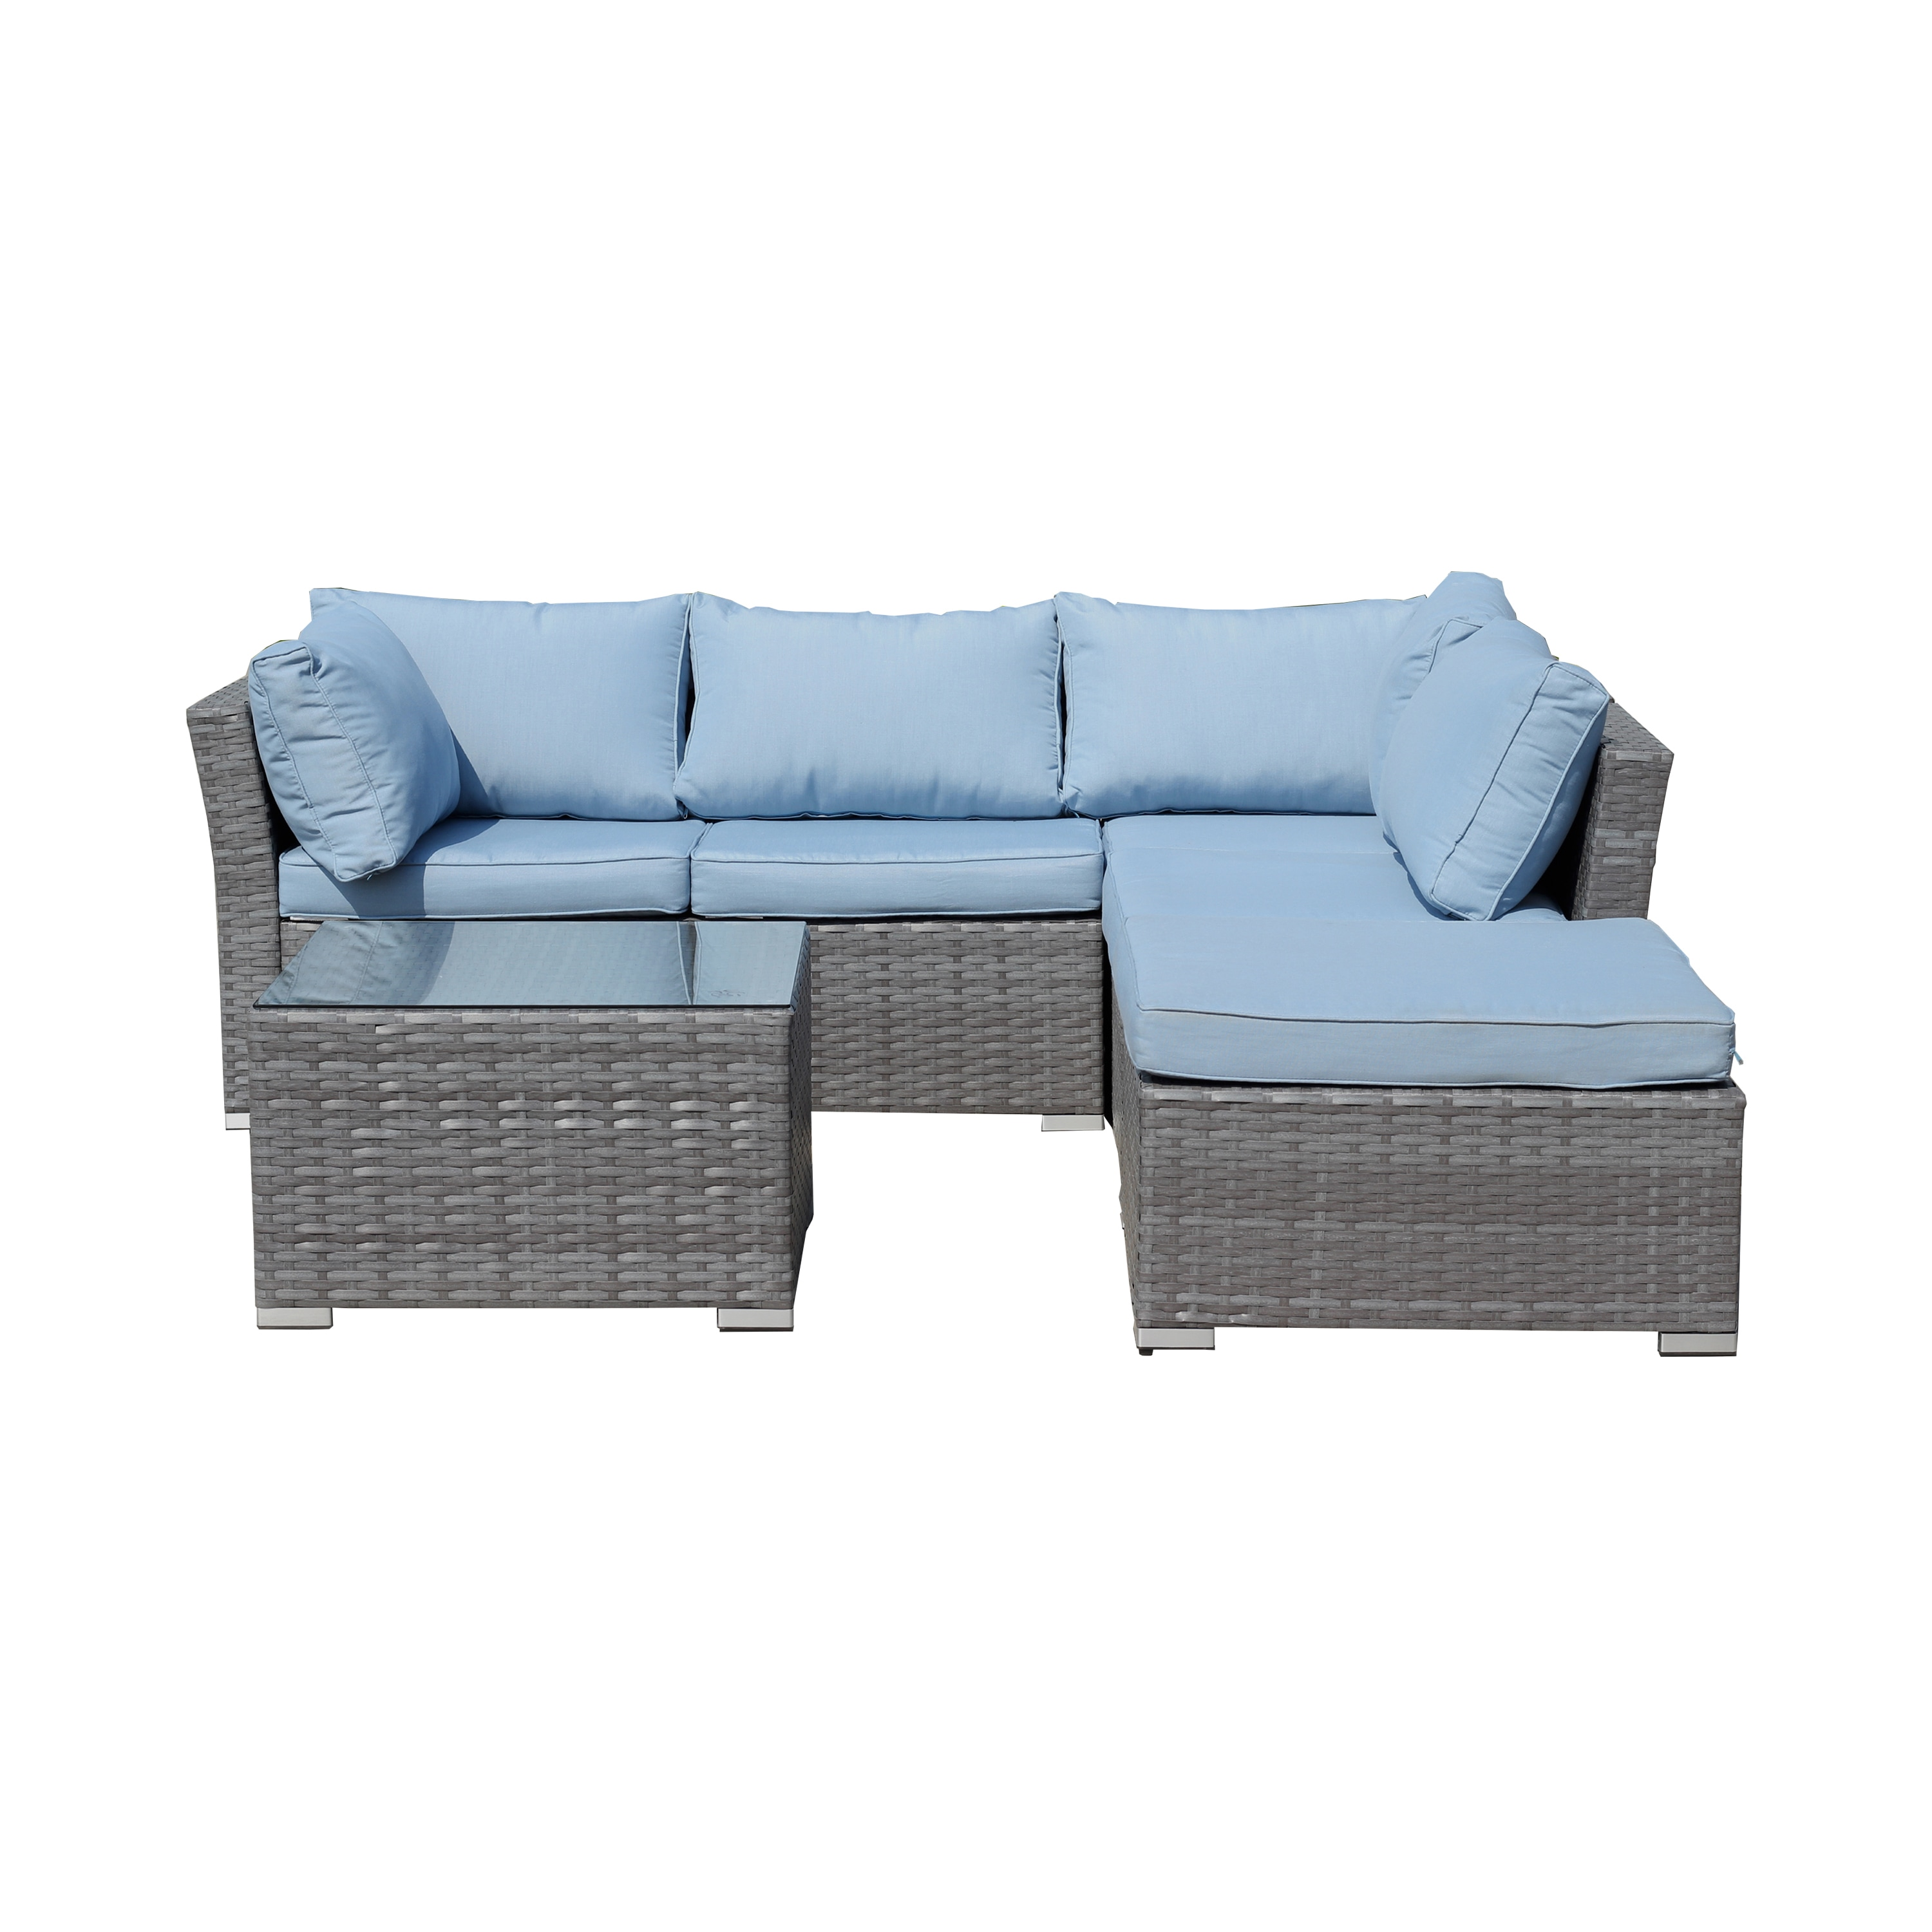 Jicaro 5 Piece Outdoor Wicker Sectional Sofa Set - Grey Wicker with Light  Blue Cushions